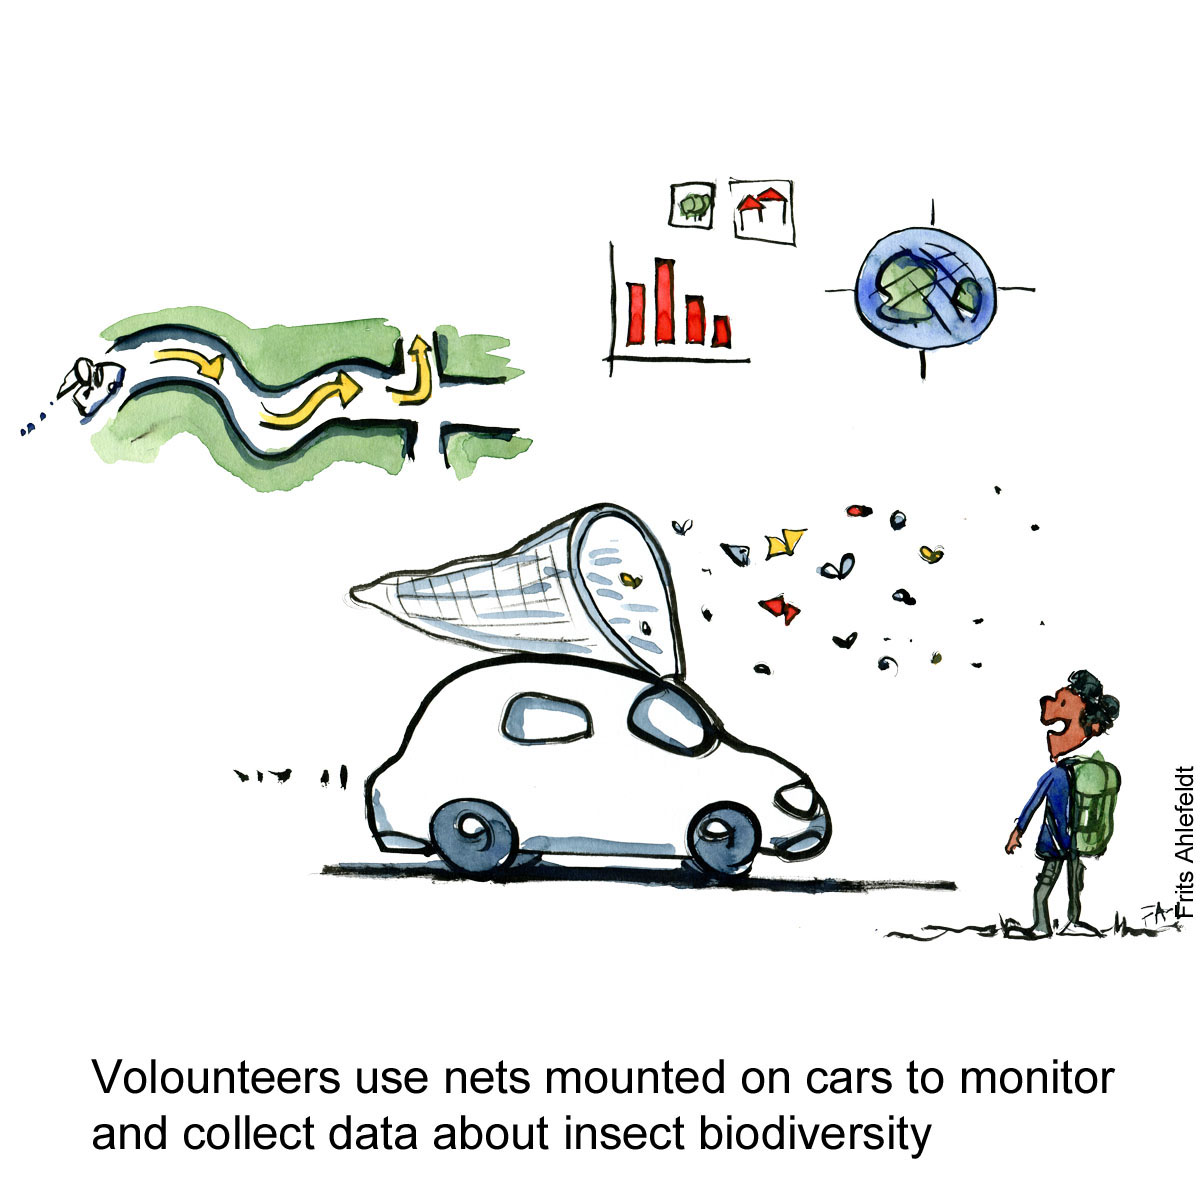 Drawing of a car with a net on the roof, driving around and collecting insects. Citizen science drawing by Frits Ahlefeldt